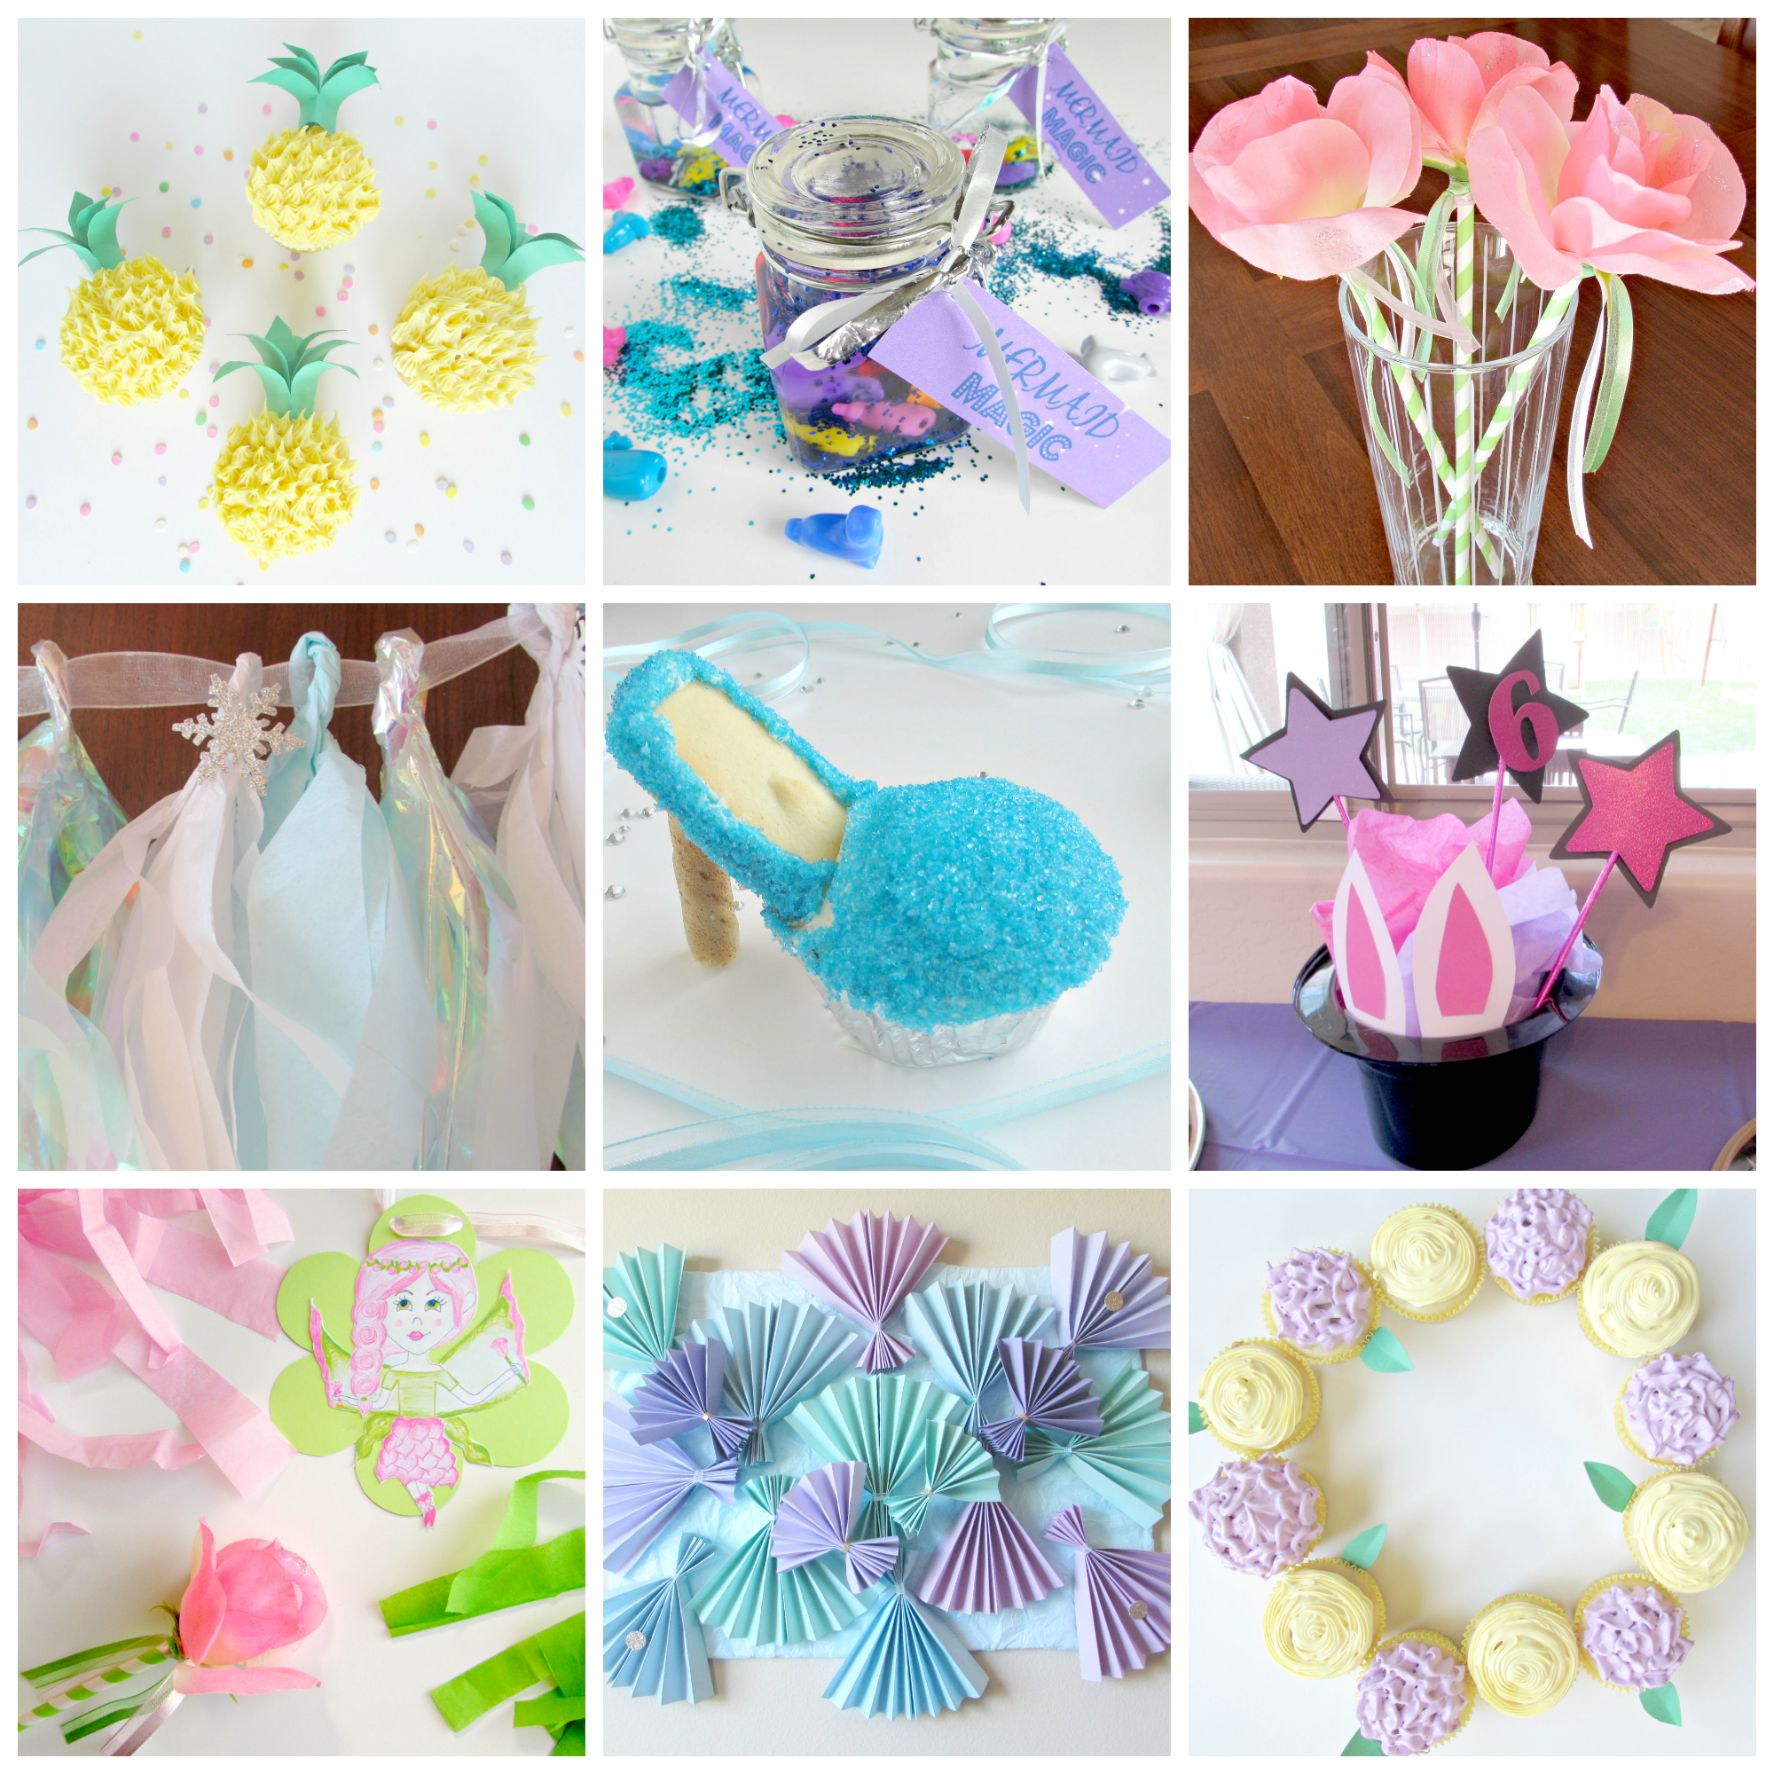 Homemade Parties Diy Cupcakes Party Decorations Val Event Gal